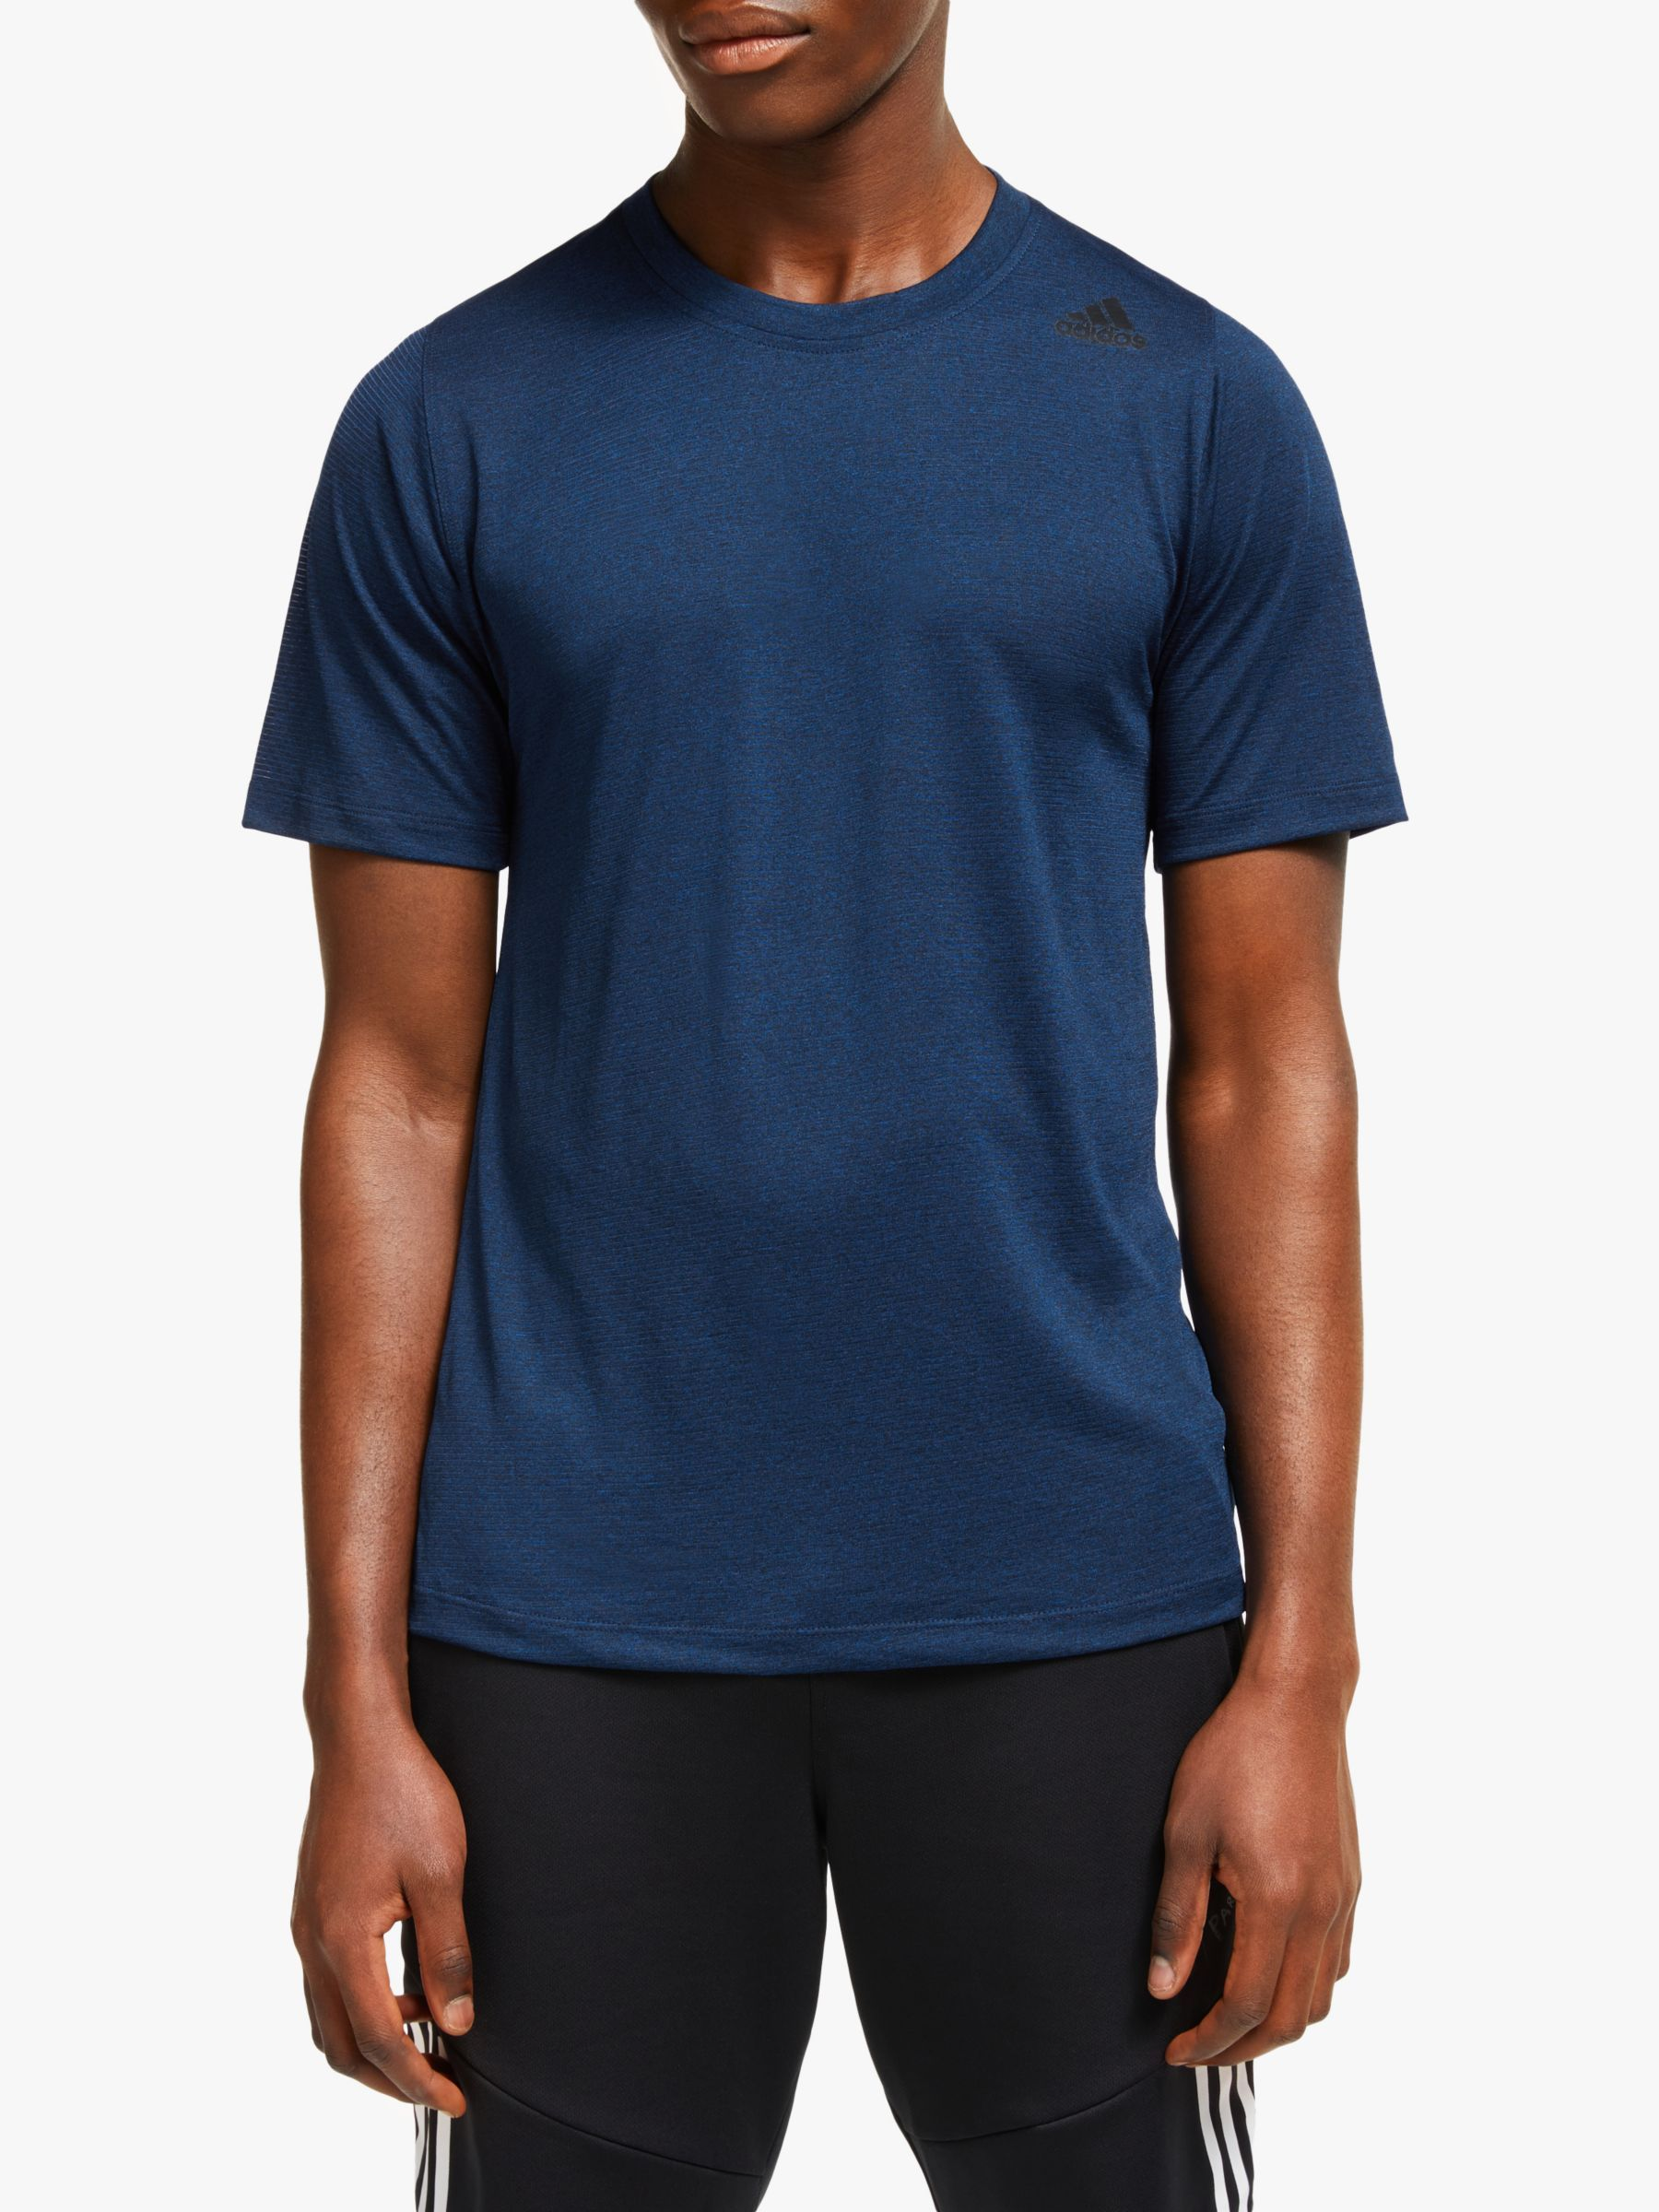 adidas FreeLift Tech Climacool Fitted Training T Shirt